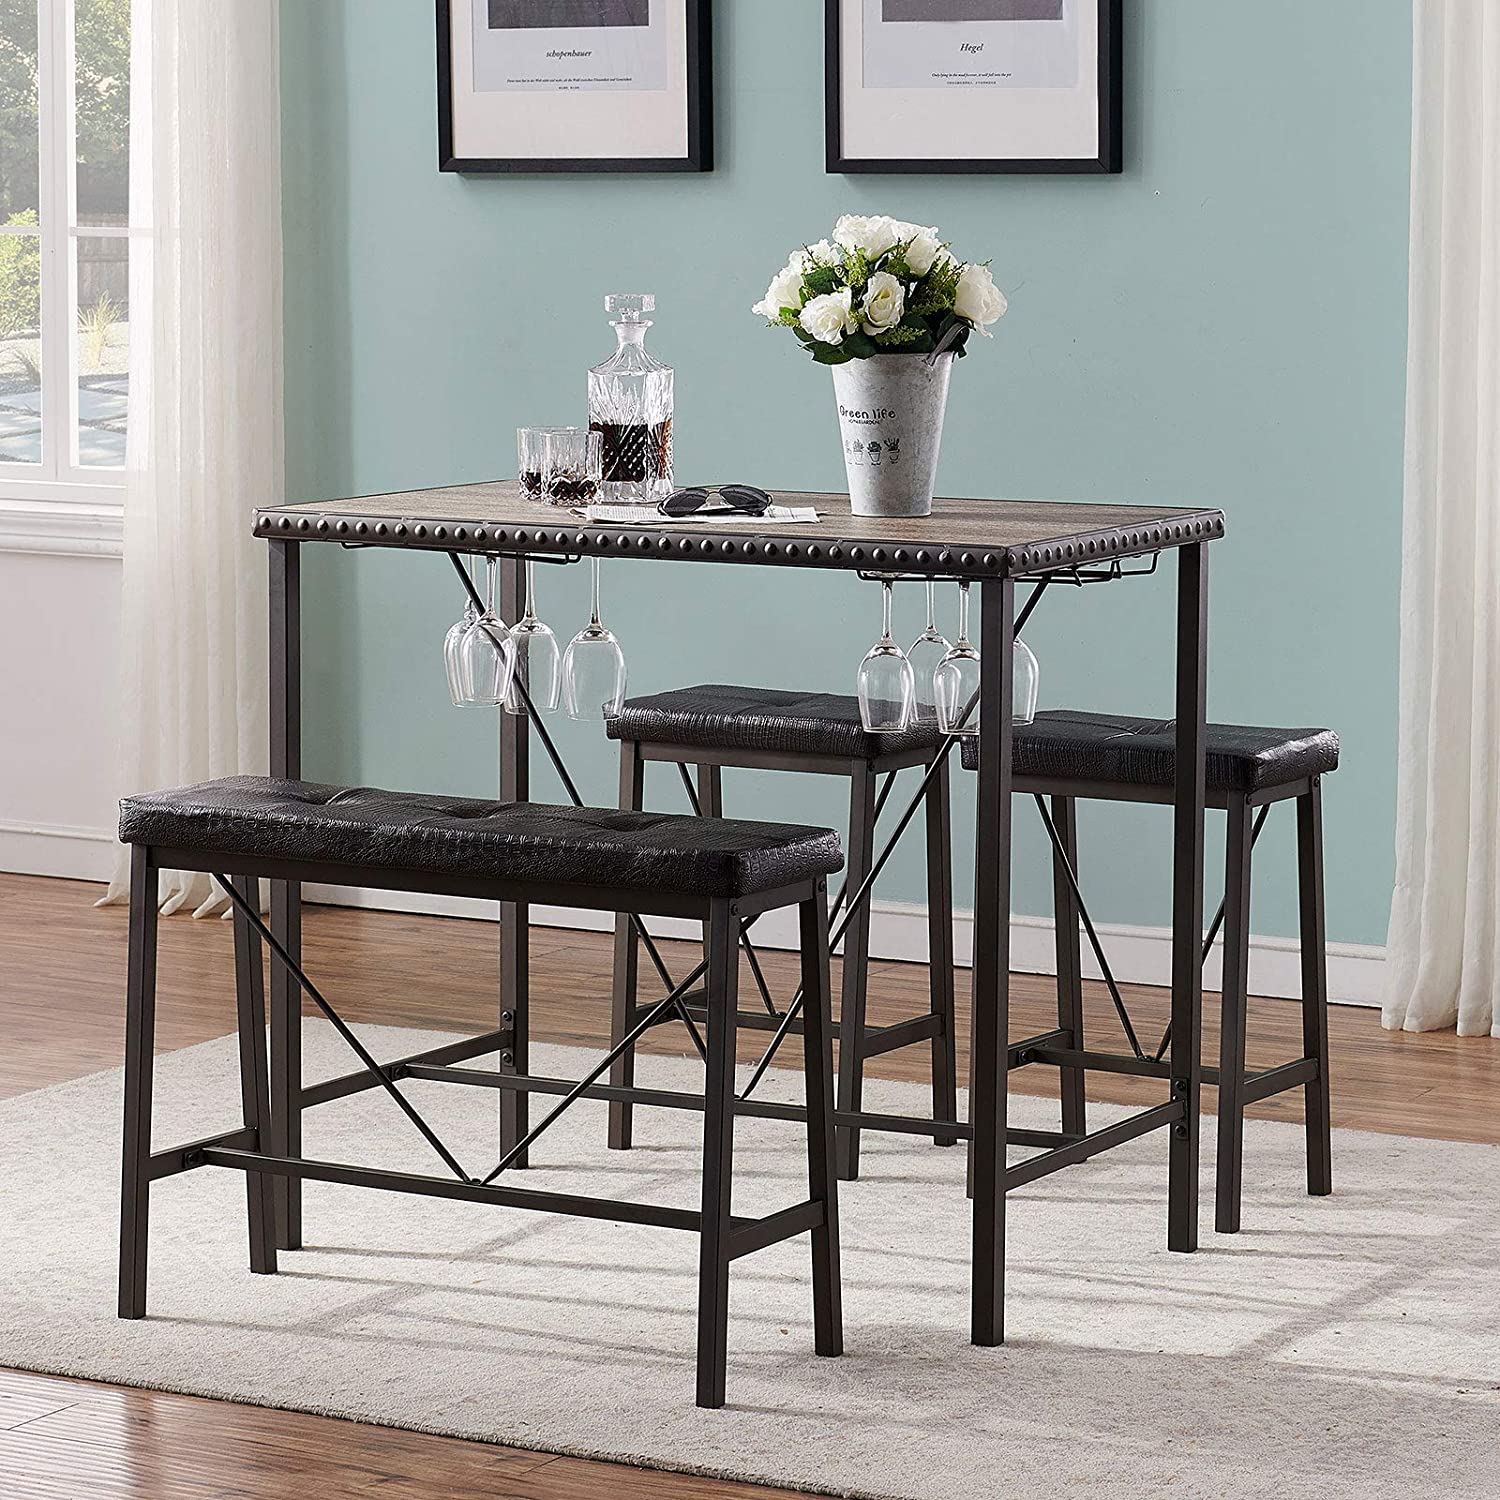 O&K FURNITURE 4-Piece Industrial Dining Table Set with Glass Holder, Kitchen Table with Upholstered Bench and Stools, Counter Height Pub Table Set for Small Space(Gray)